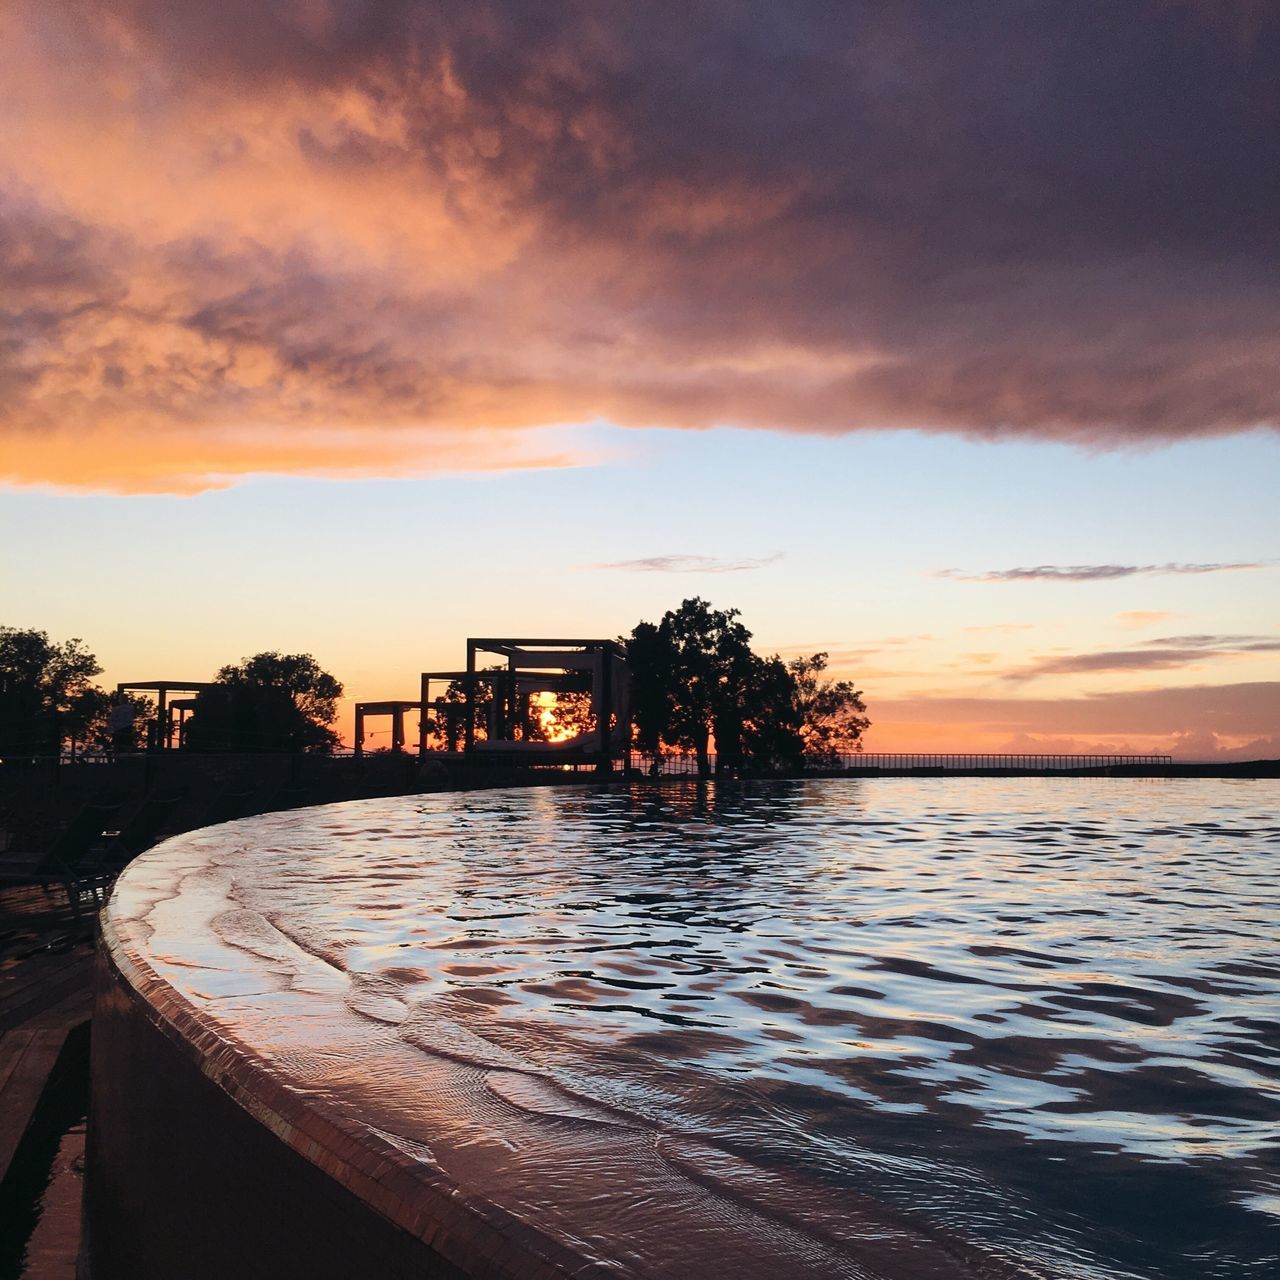 Sunset Water Sky Cloud - Sky Nature Tree Sunset Outdoors No People Beauty In Nature Built Structure Tranquility Sea Scenics Architecture Tranquil Scene Swimming Pool Day